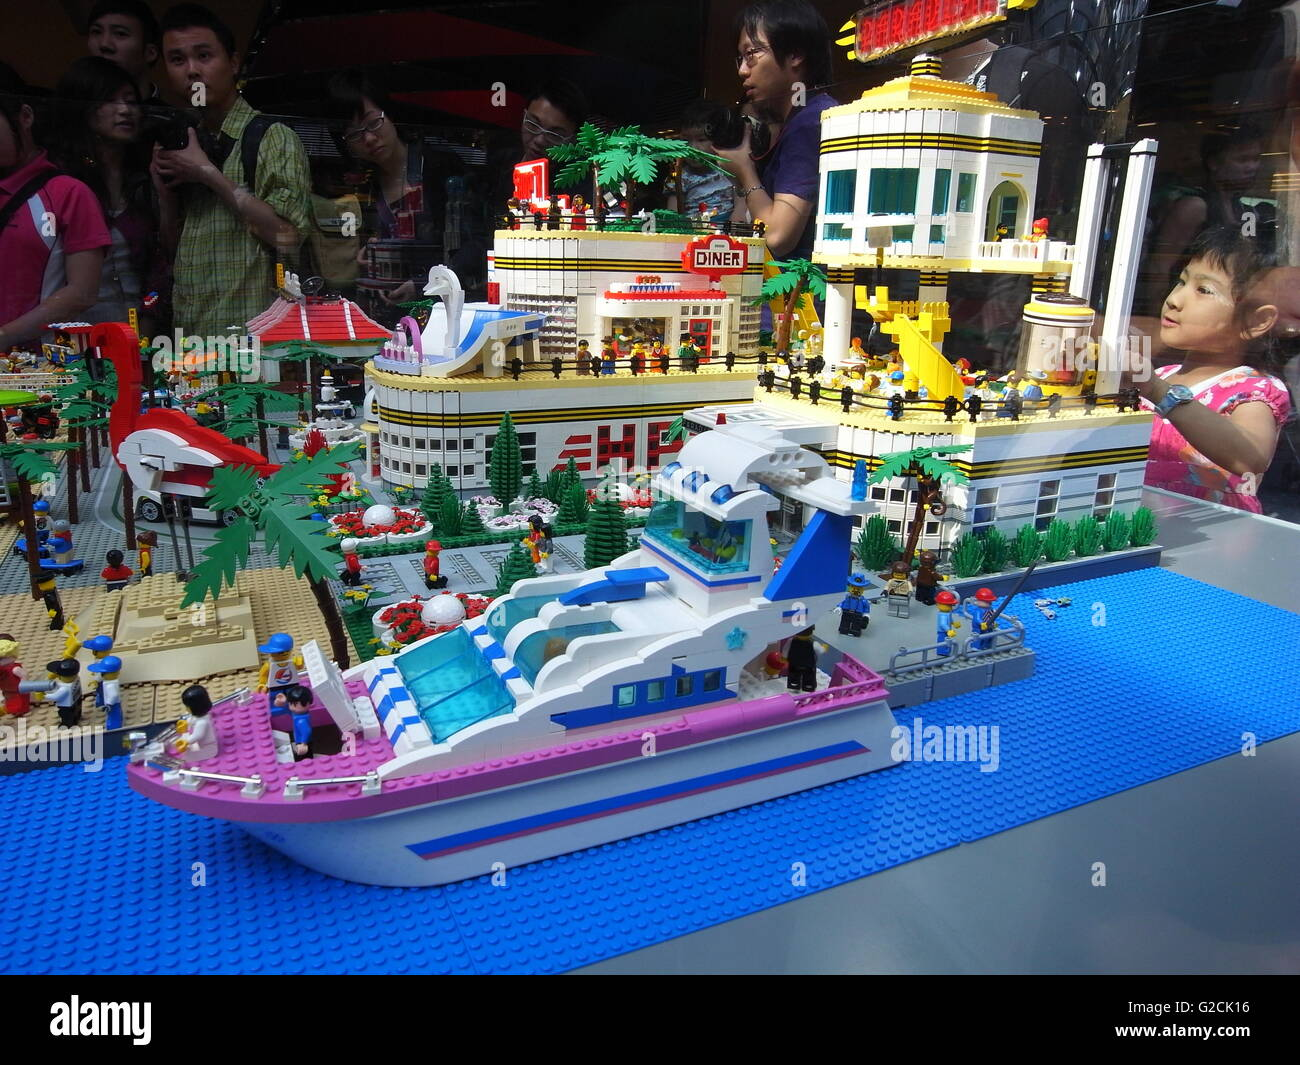 Lego Model building  toy fun landscape city river yacht shopping mall people garden - Stock Image